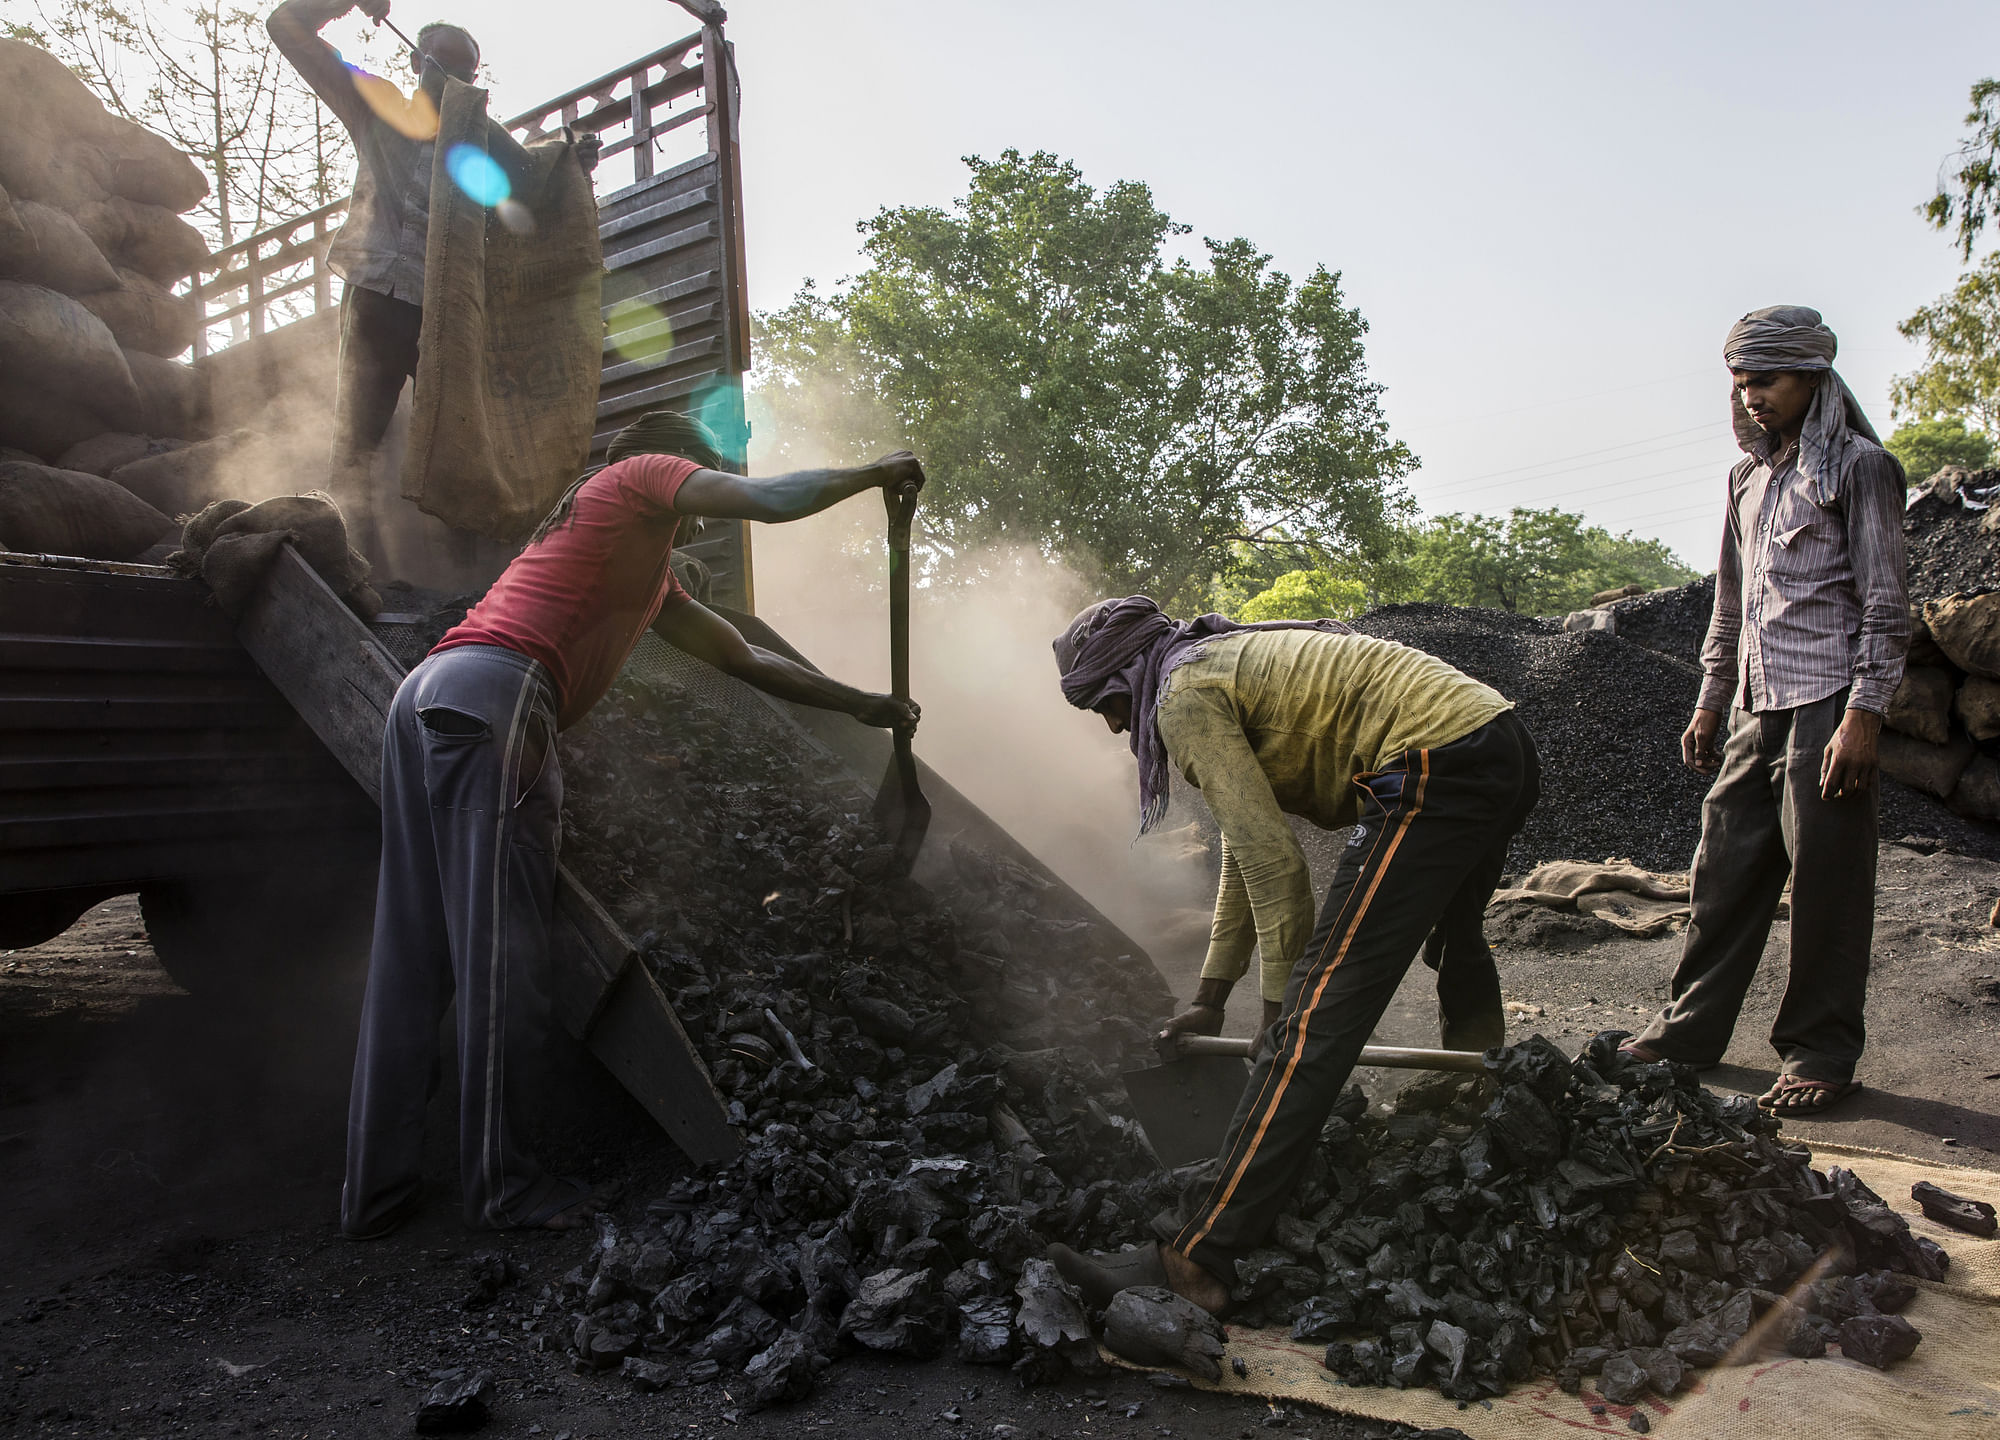 Chhattisgarh Coal Mining: Chief Minister Baghel Demands Rs 4,000 Crore From Centre